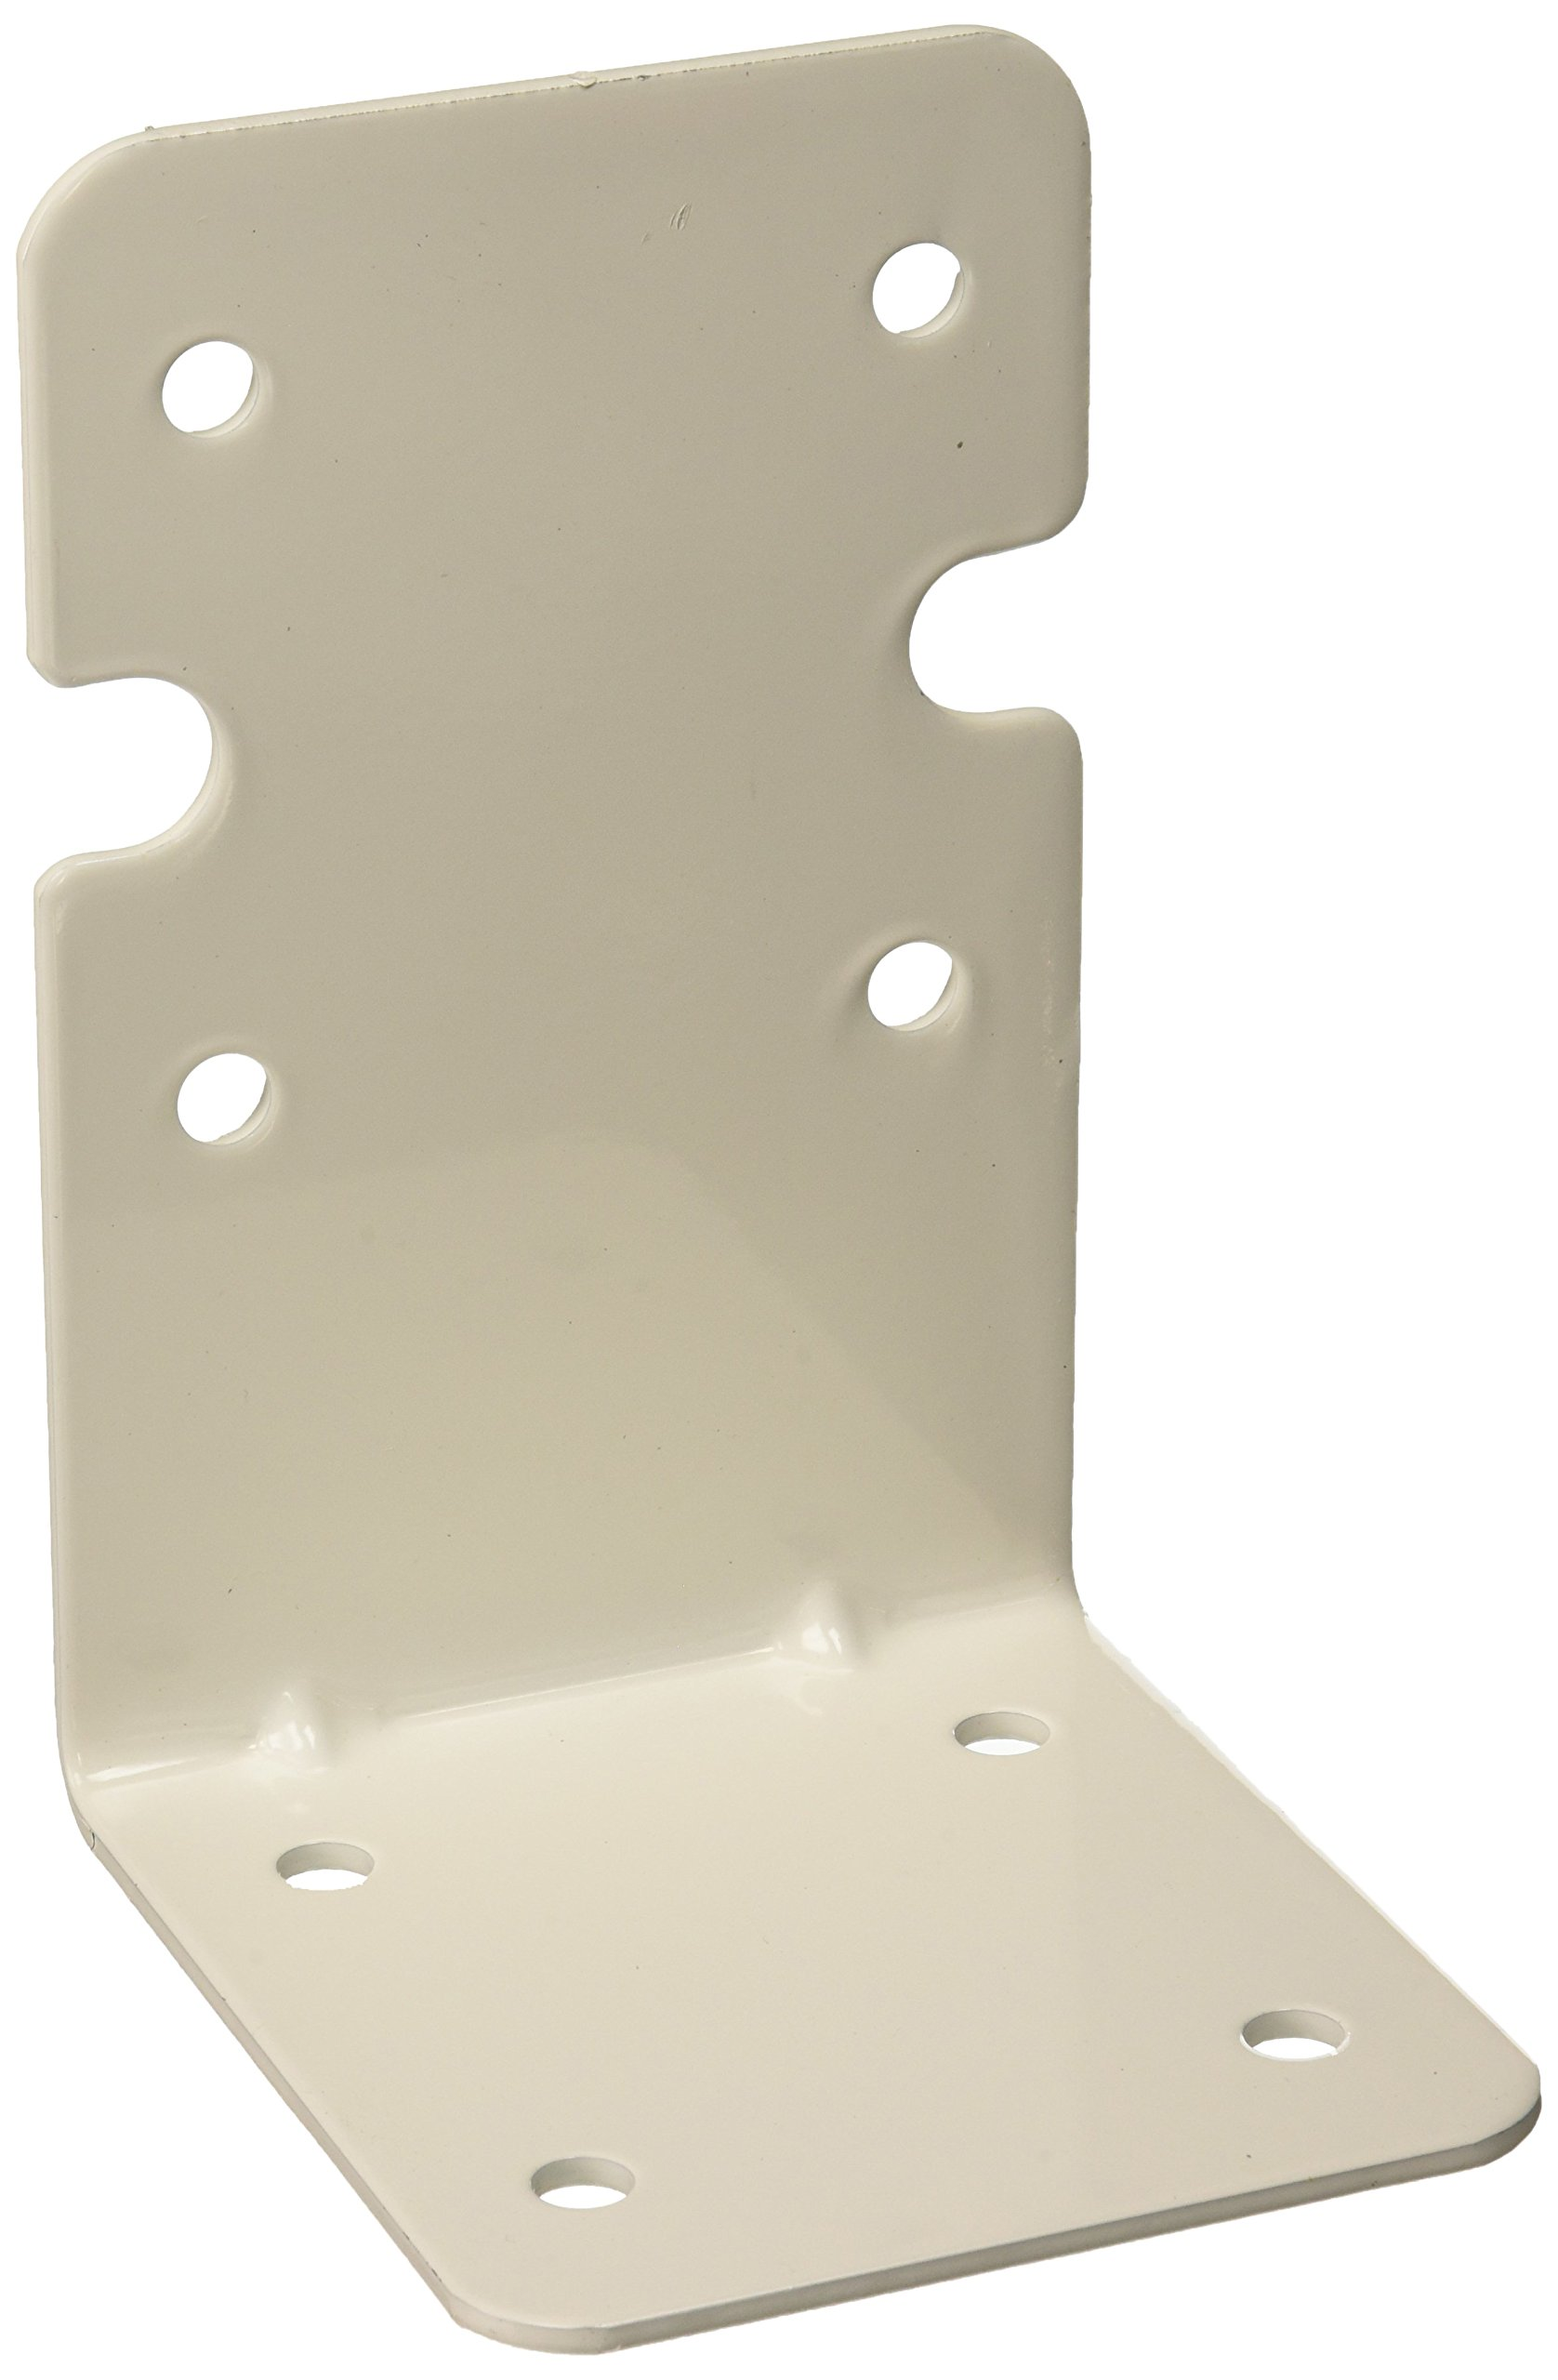 Housing Bracket for Big blue 10'' and 20'' filter housings